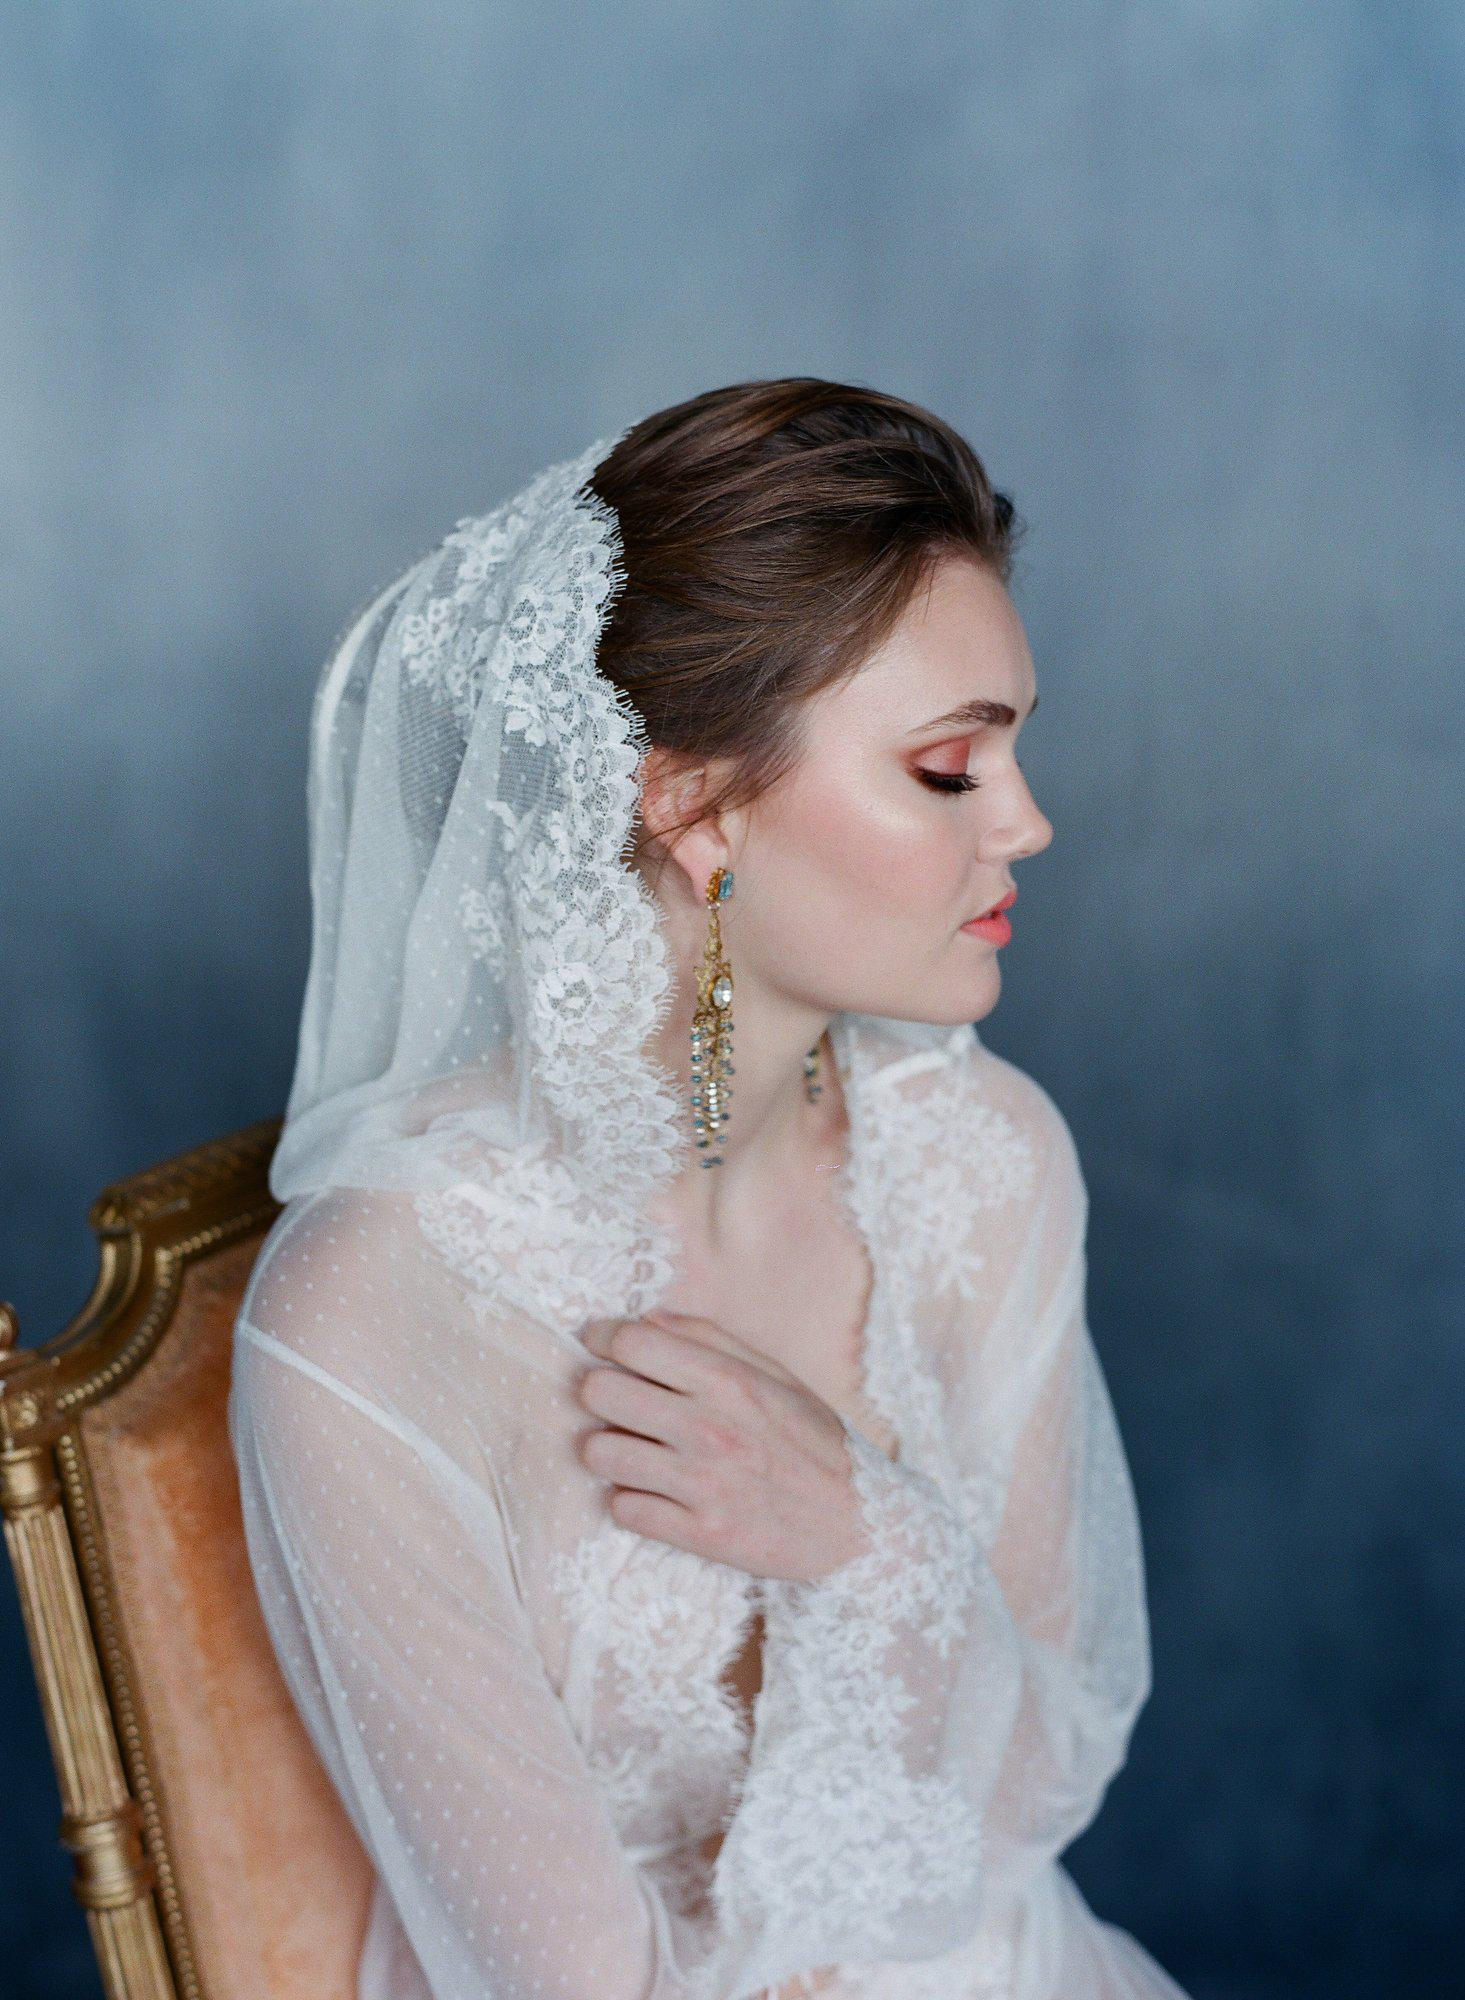 Bride showing a side view wearing a dotted lace robe with hood and lace trim